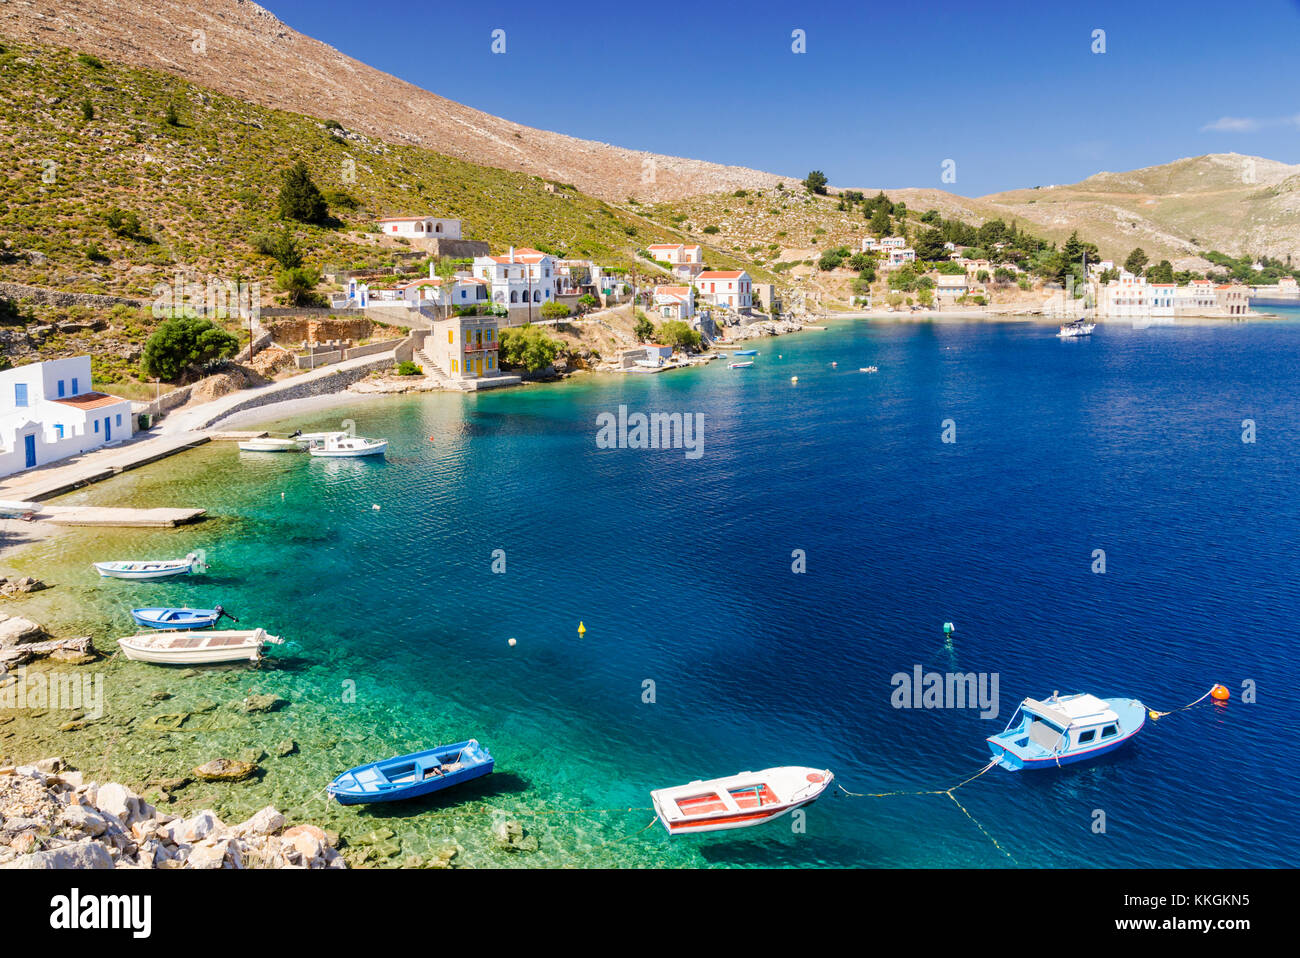 Looking towards the small peaceful village of Emporios on Symi Island, Dodecanese, Greece - Stock Image